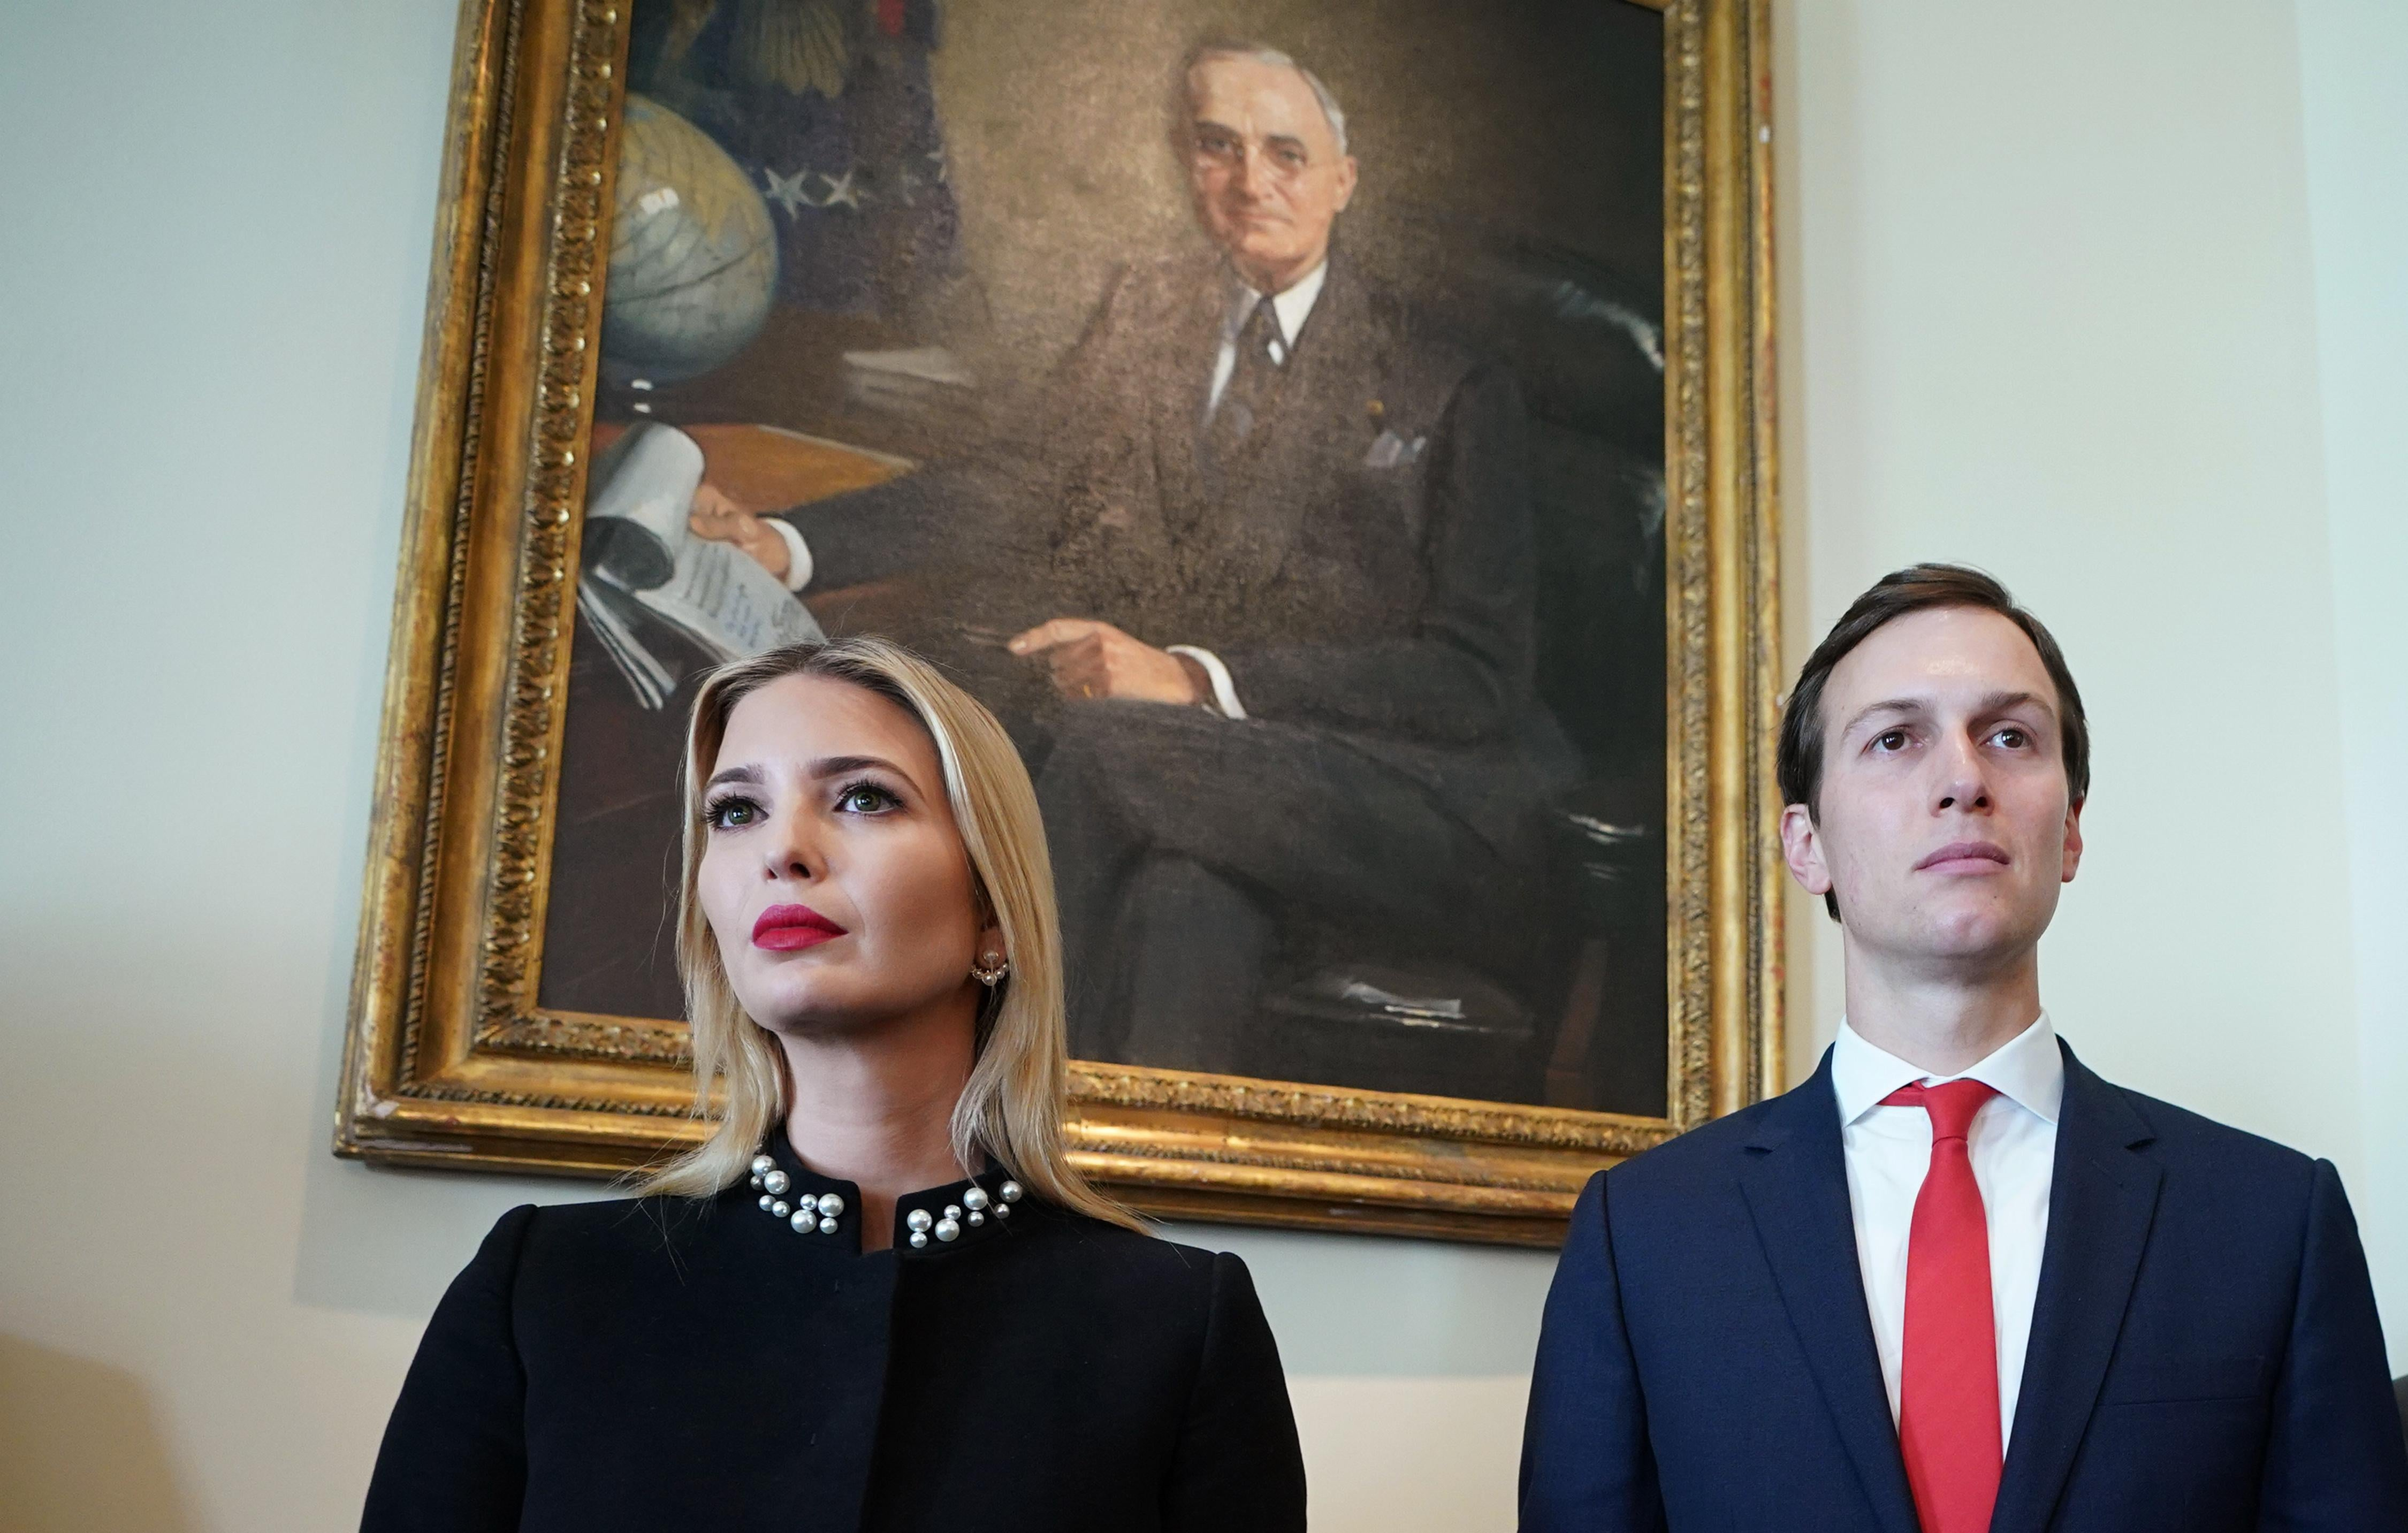 Ivanka Trump and Jared Kushner attend a Cabinet meeting in the Cabinet Room of the White House on March 8, 2018 in Washington, DC.